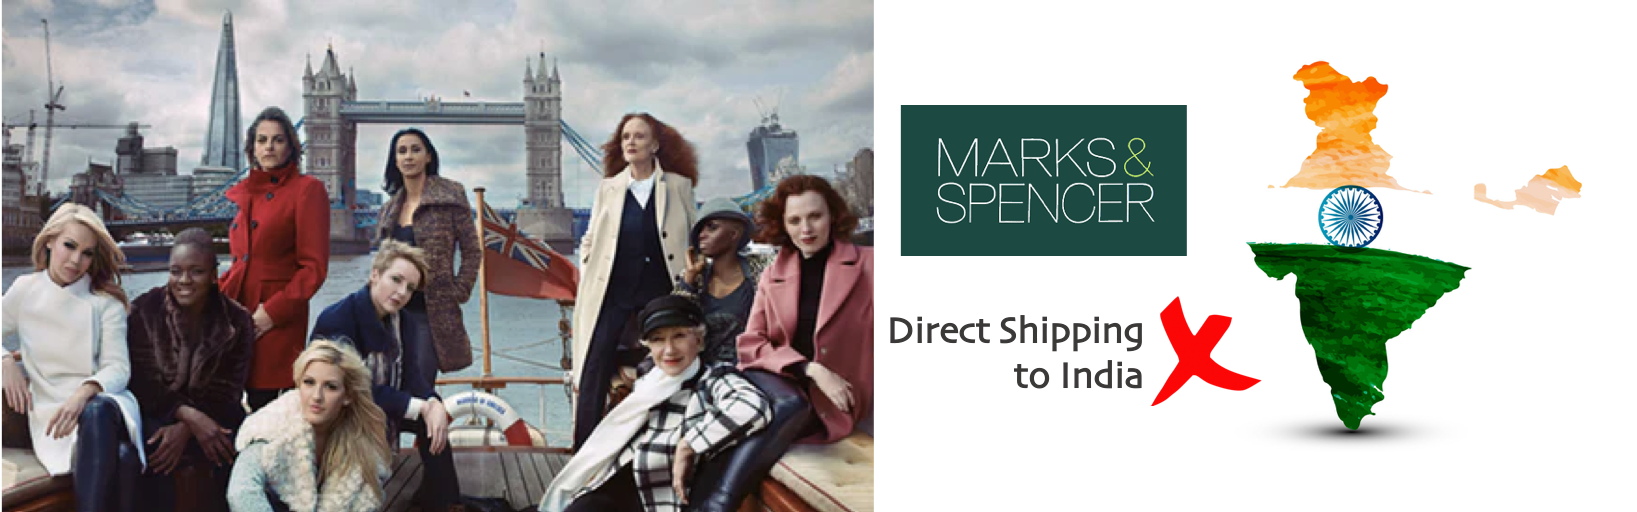 shop Marks & Spencer ship to india